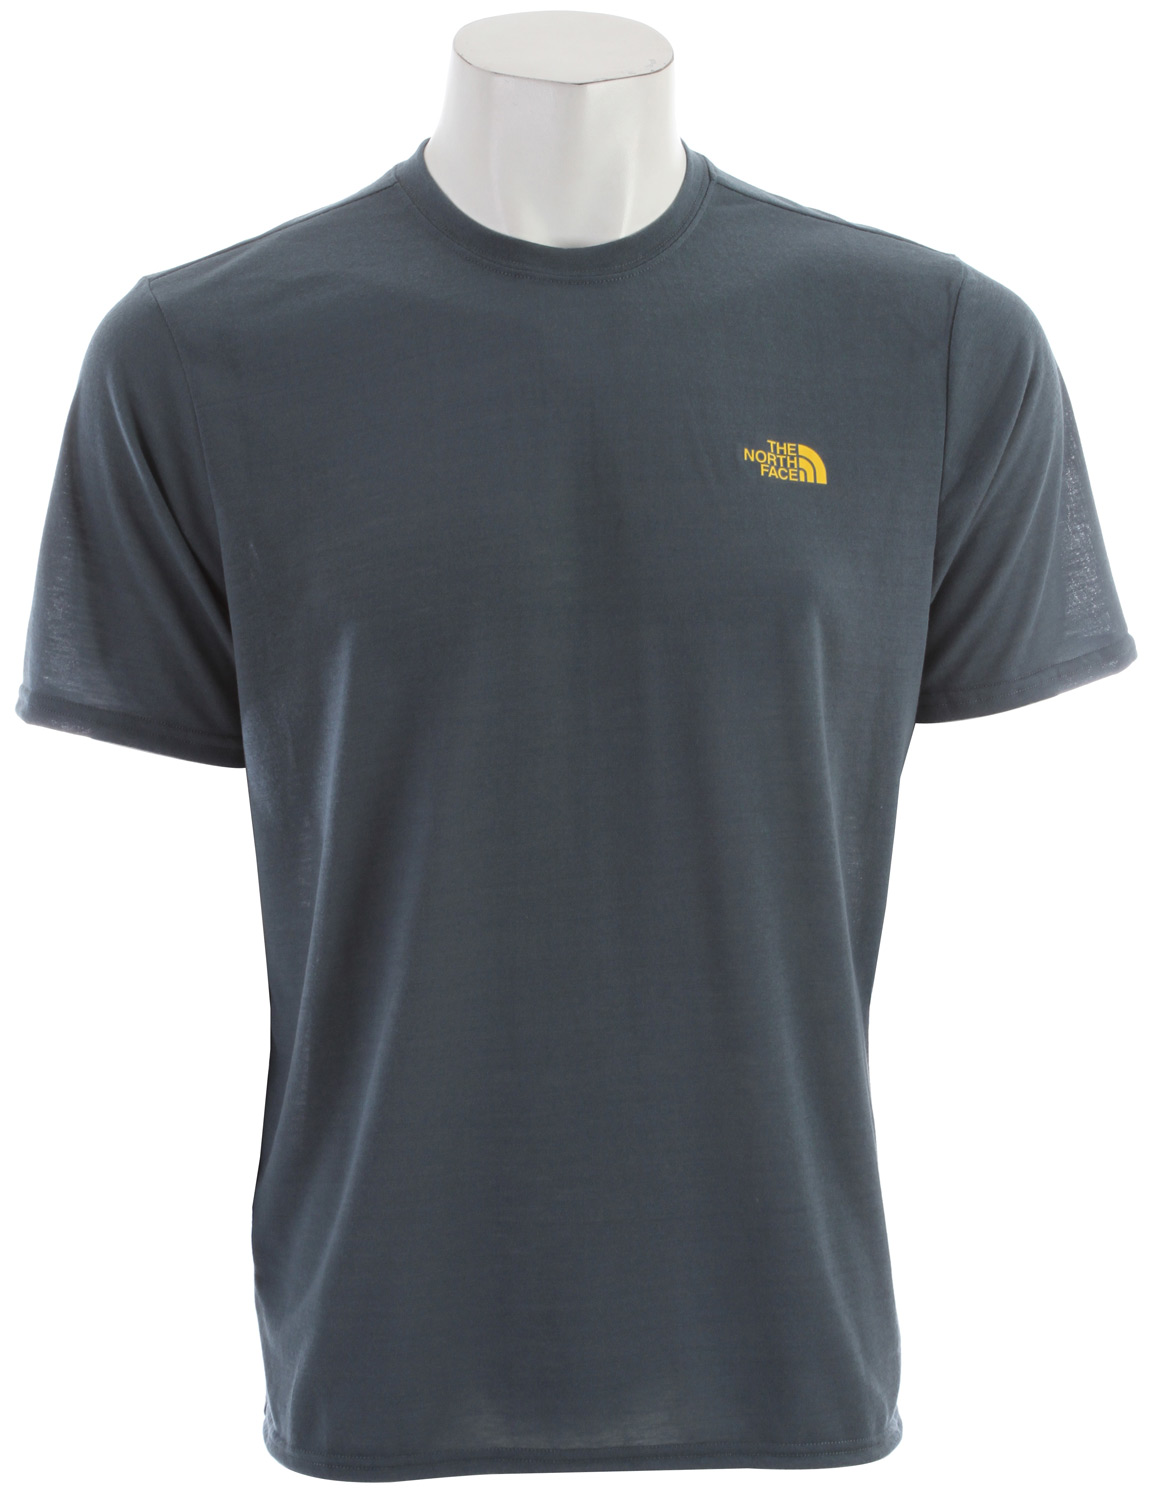 "Short-sleeve VaporWick tee provides excellent moisture management with a comfortable cotton feel, perfect for in-the-gym training. Key Features of the The North Face Reaxion Crew T-Shirt: Soft, ultralight fabric Relaxed fit Set-in sleeves Drop-tail hem Locker loop Center back: 27.5"" Fabric: 140 g/m2 100% polyester jersey - $17.95"